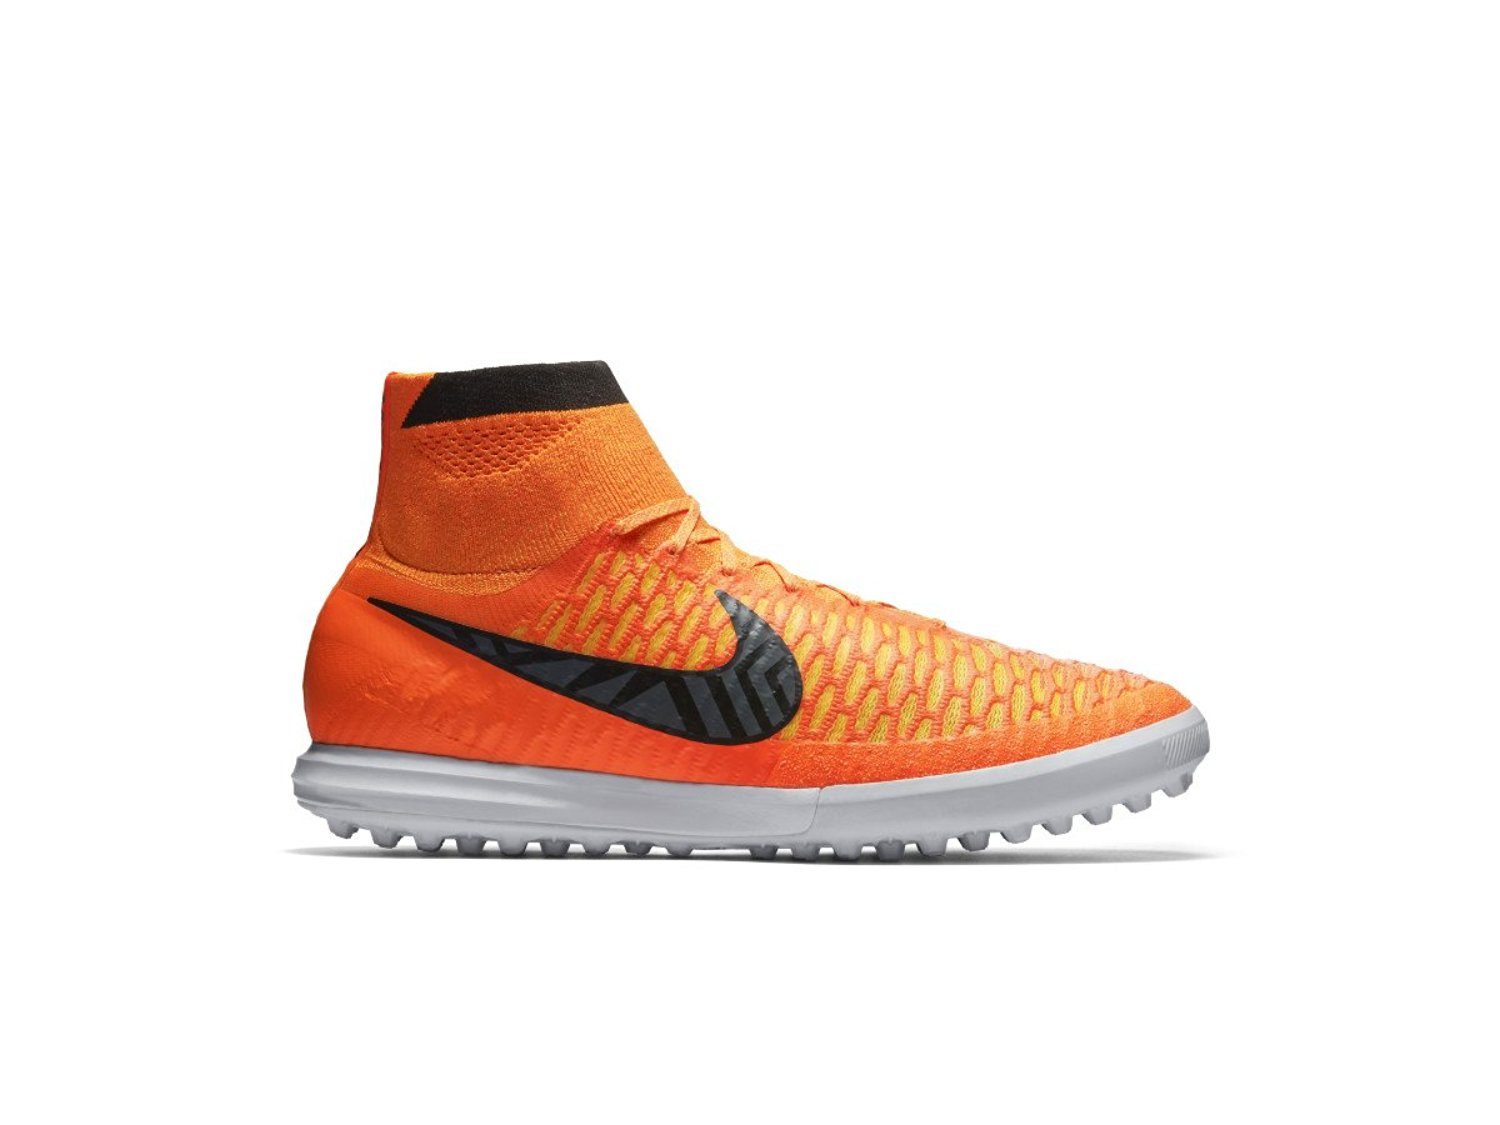 210be2608df7 Get Quotations · Nike Mens Magista Proximo TF Turf Soccer Shoes 12 1 2 US